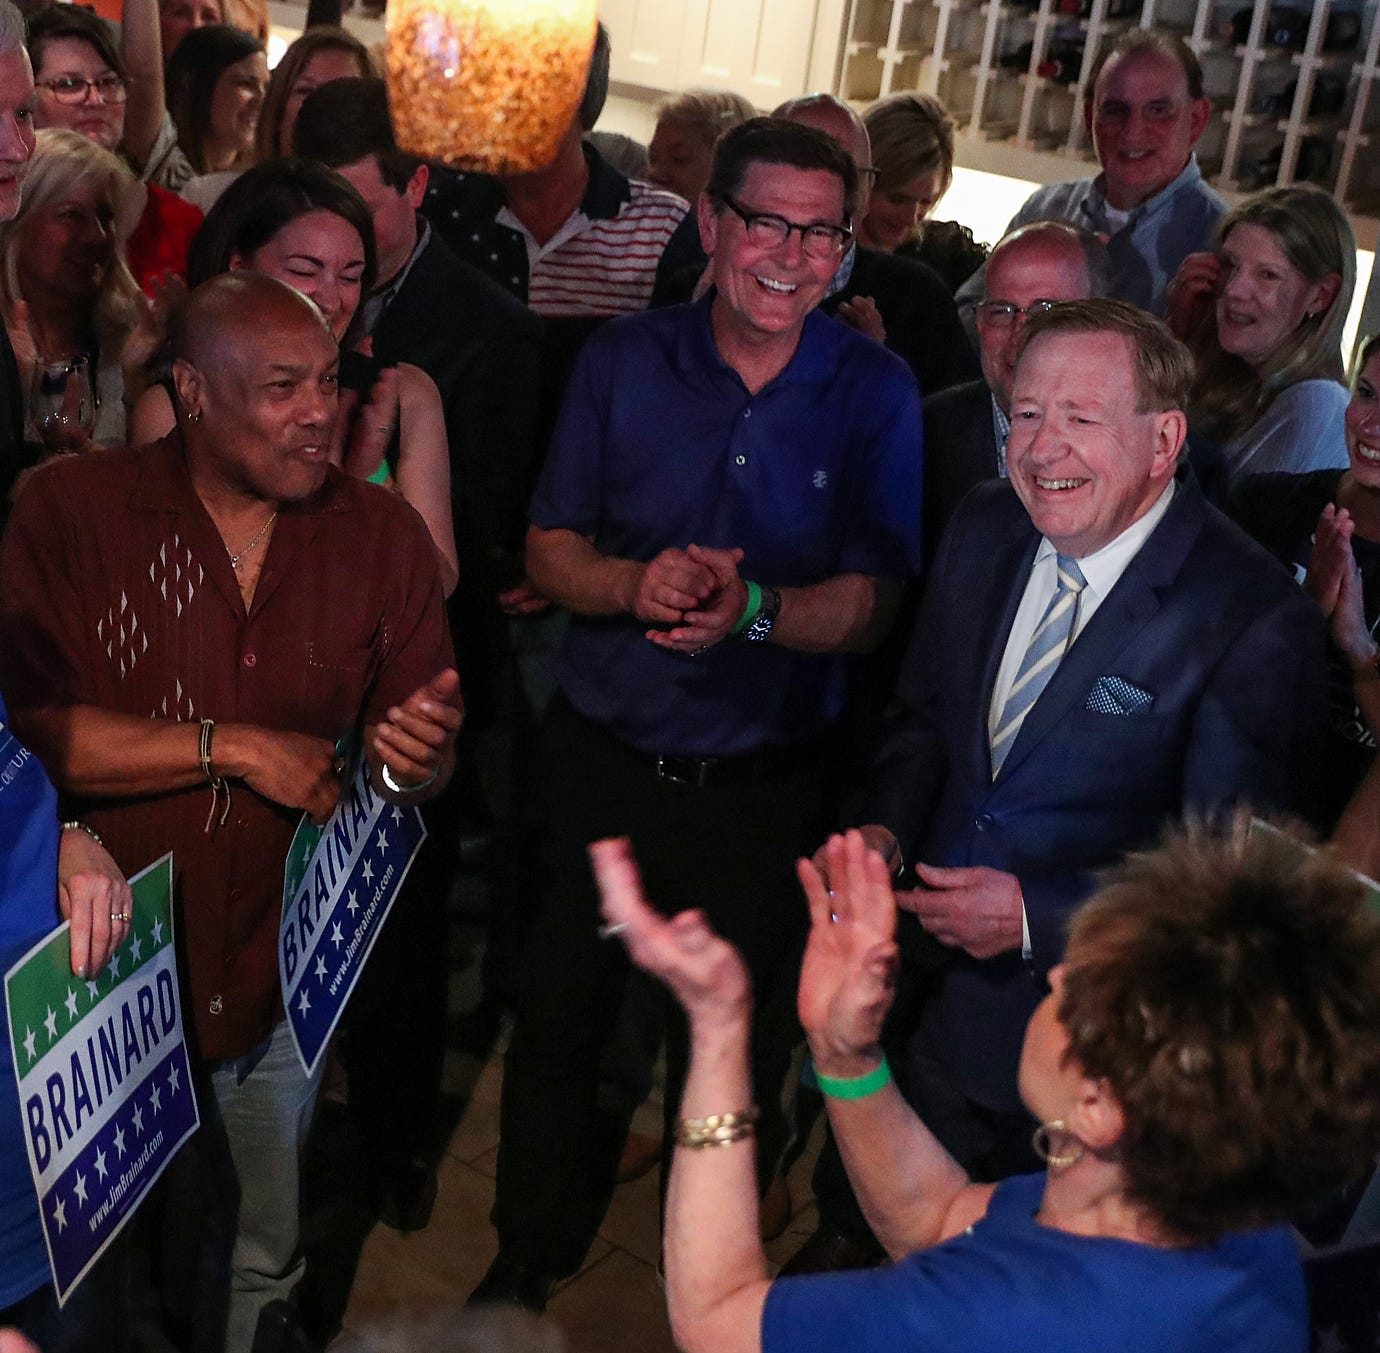 Mayor Jim Brainard wins GOP primary in closest race in decades